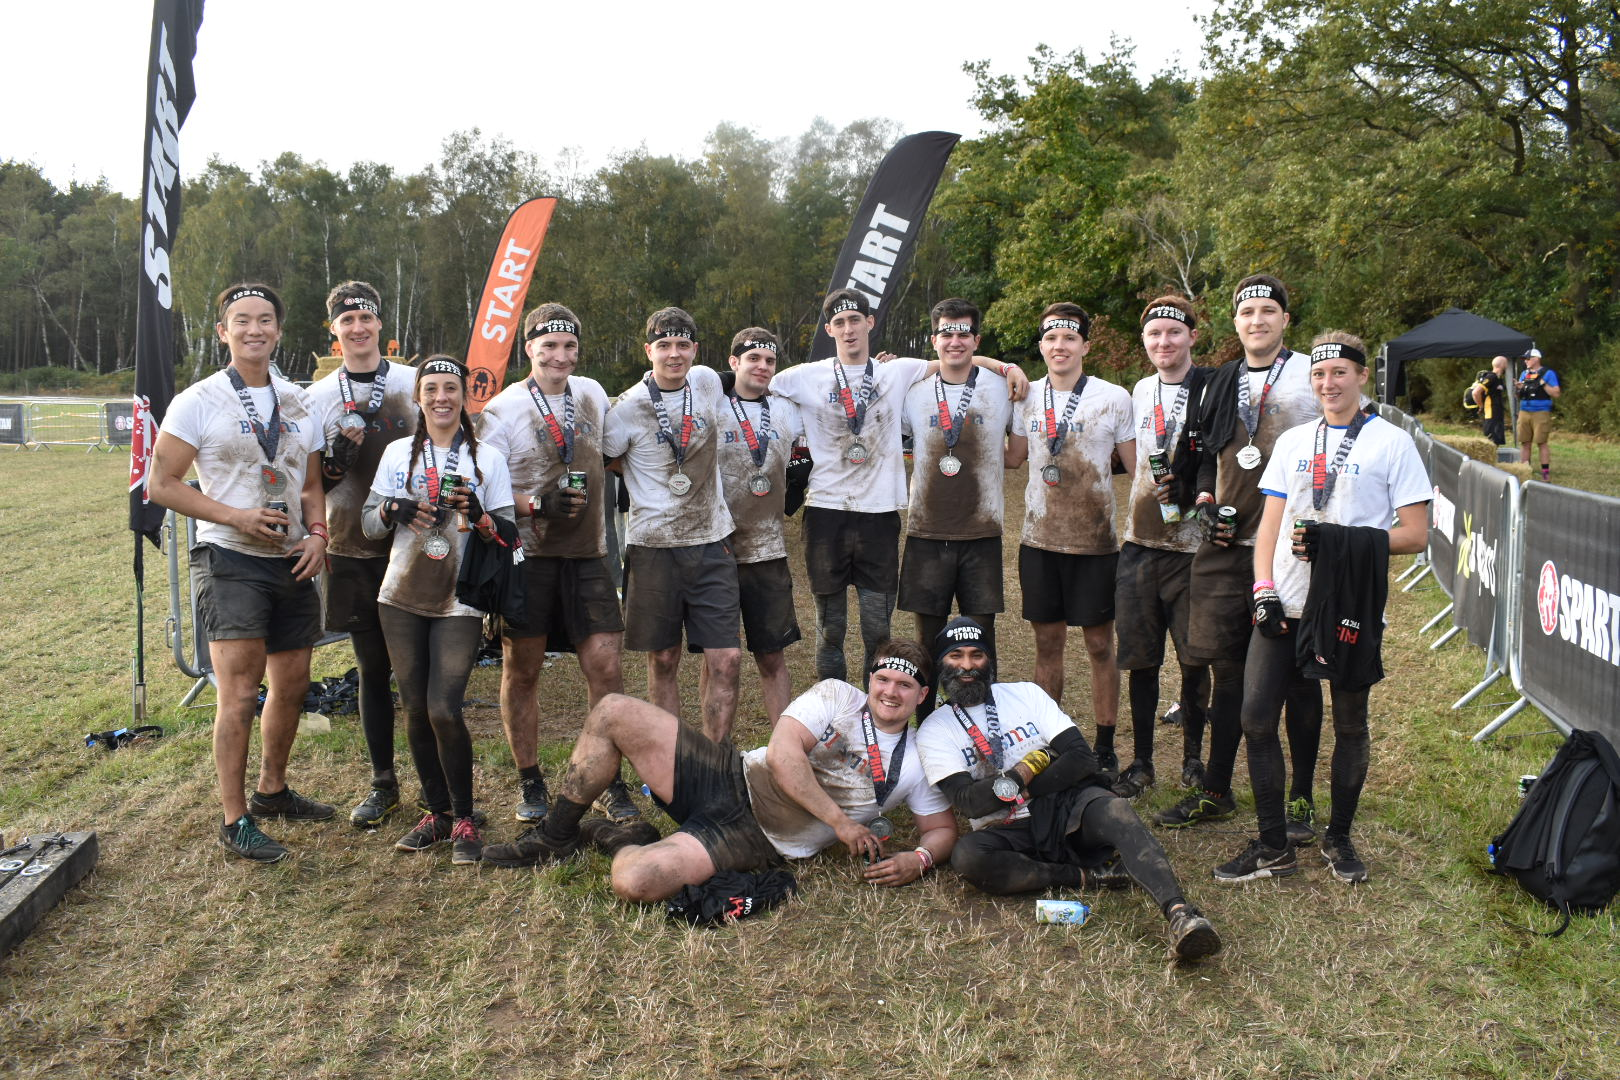 Kirk Rice Team Complete The Spartan Race